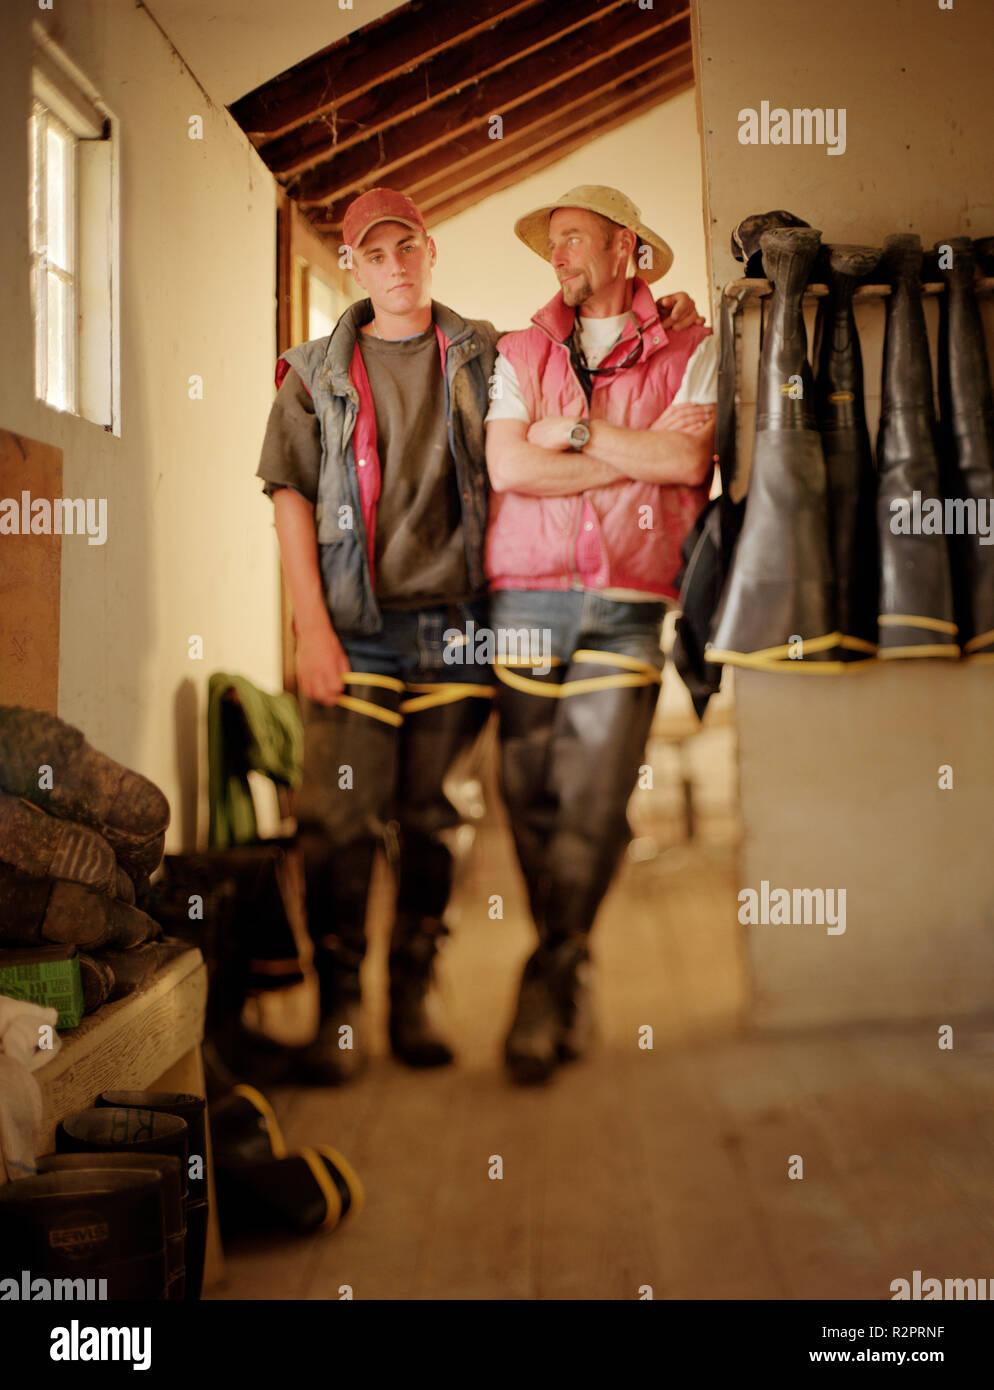 Two men standing together inside a house. - Stock Image